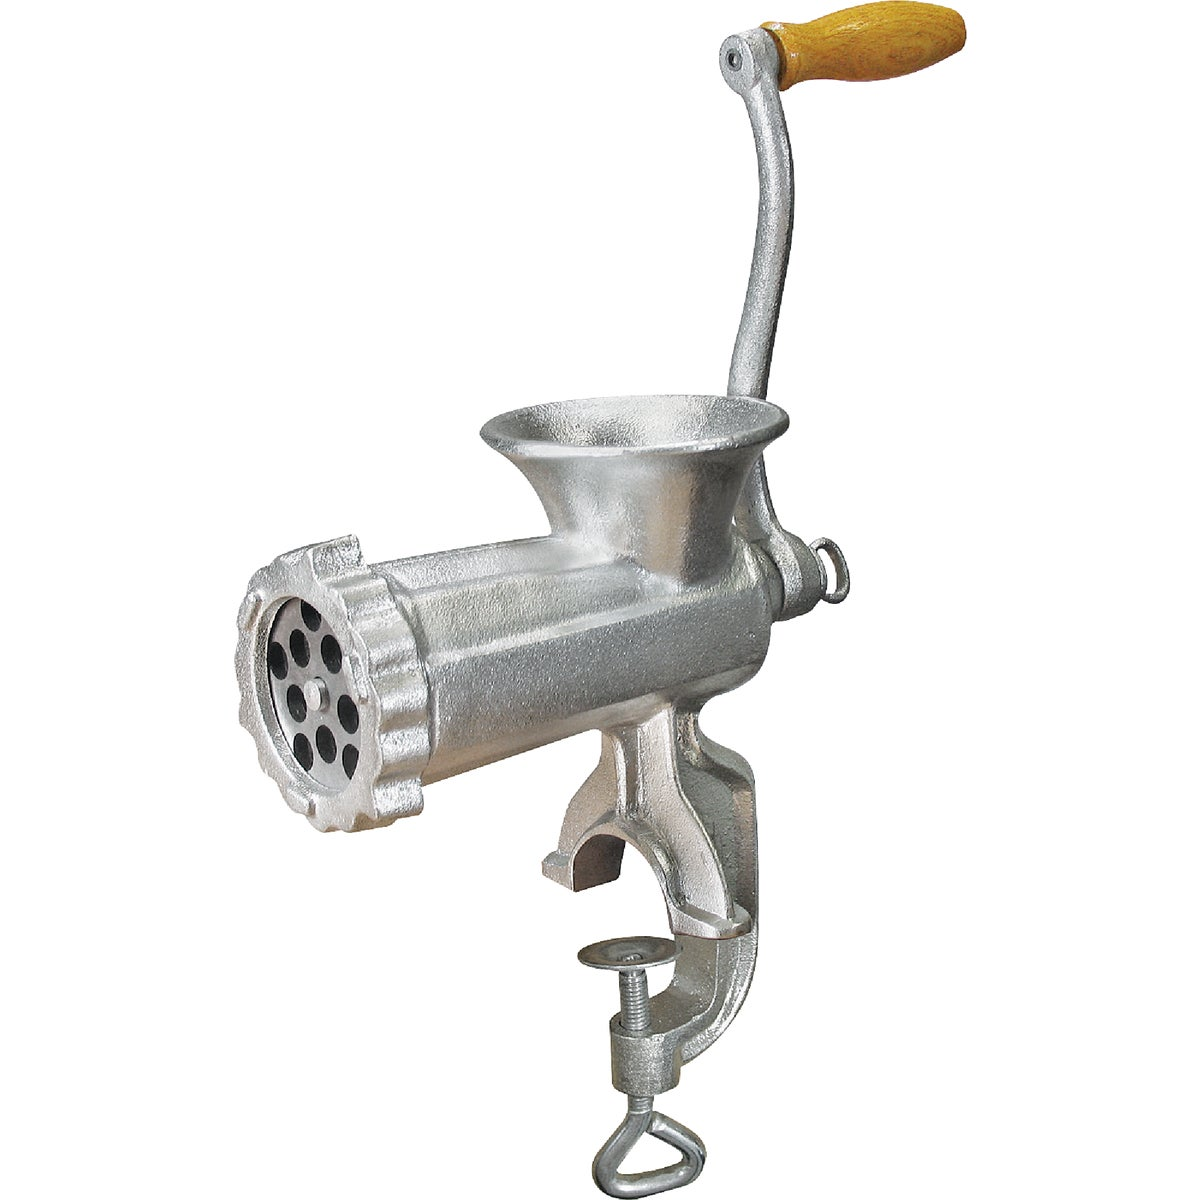 #8 MANUAL MEAT GRINDER - 36-0801-W by Weston Products